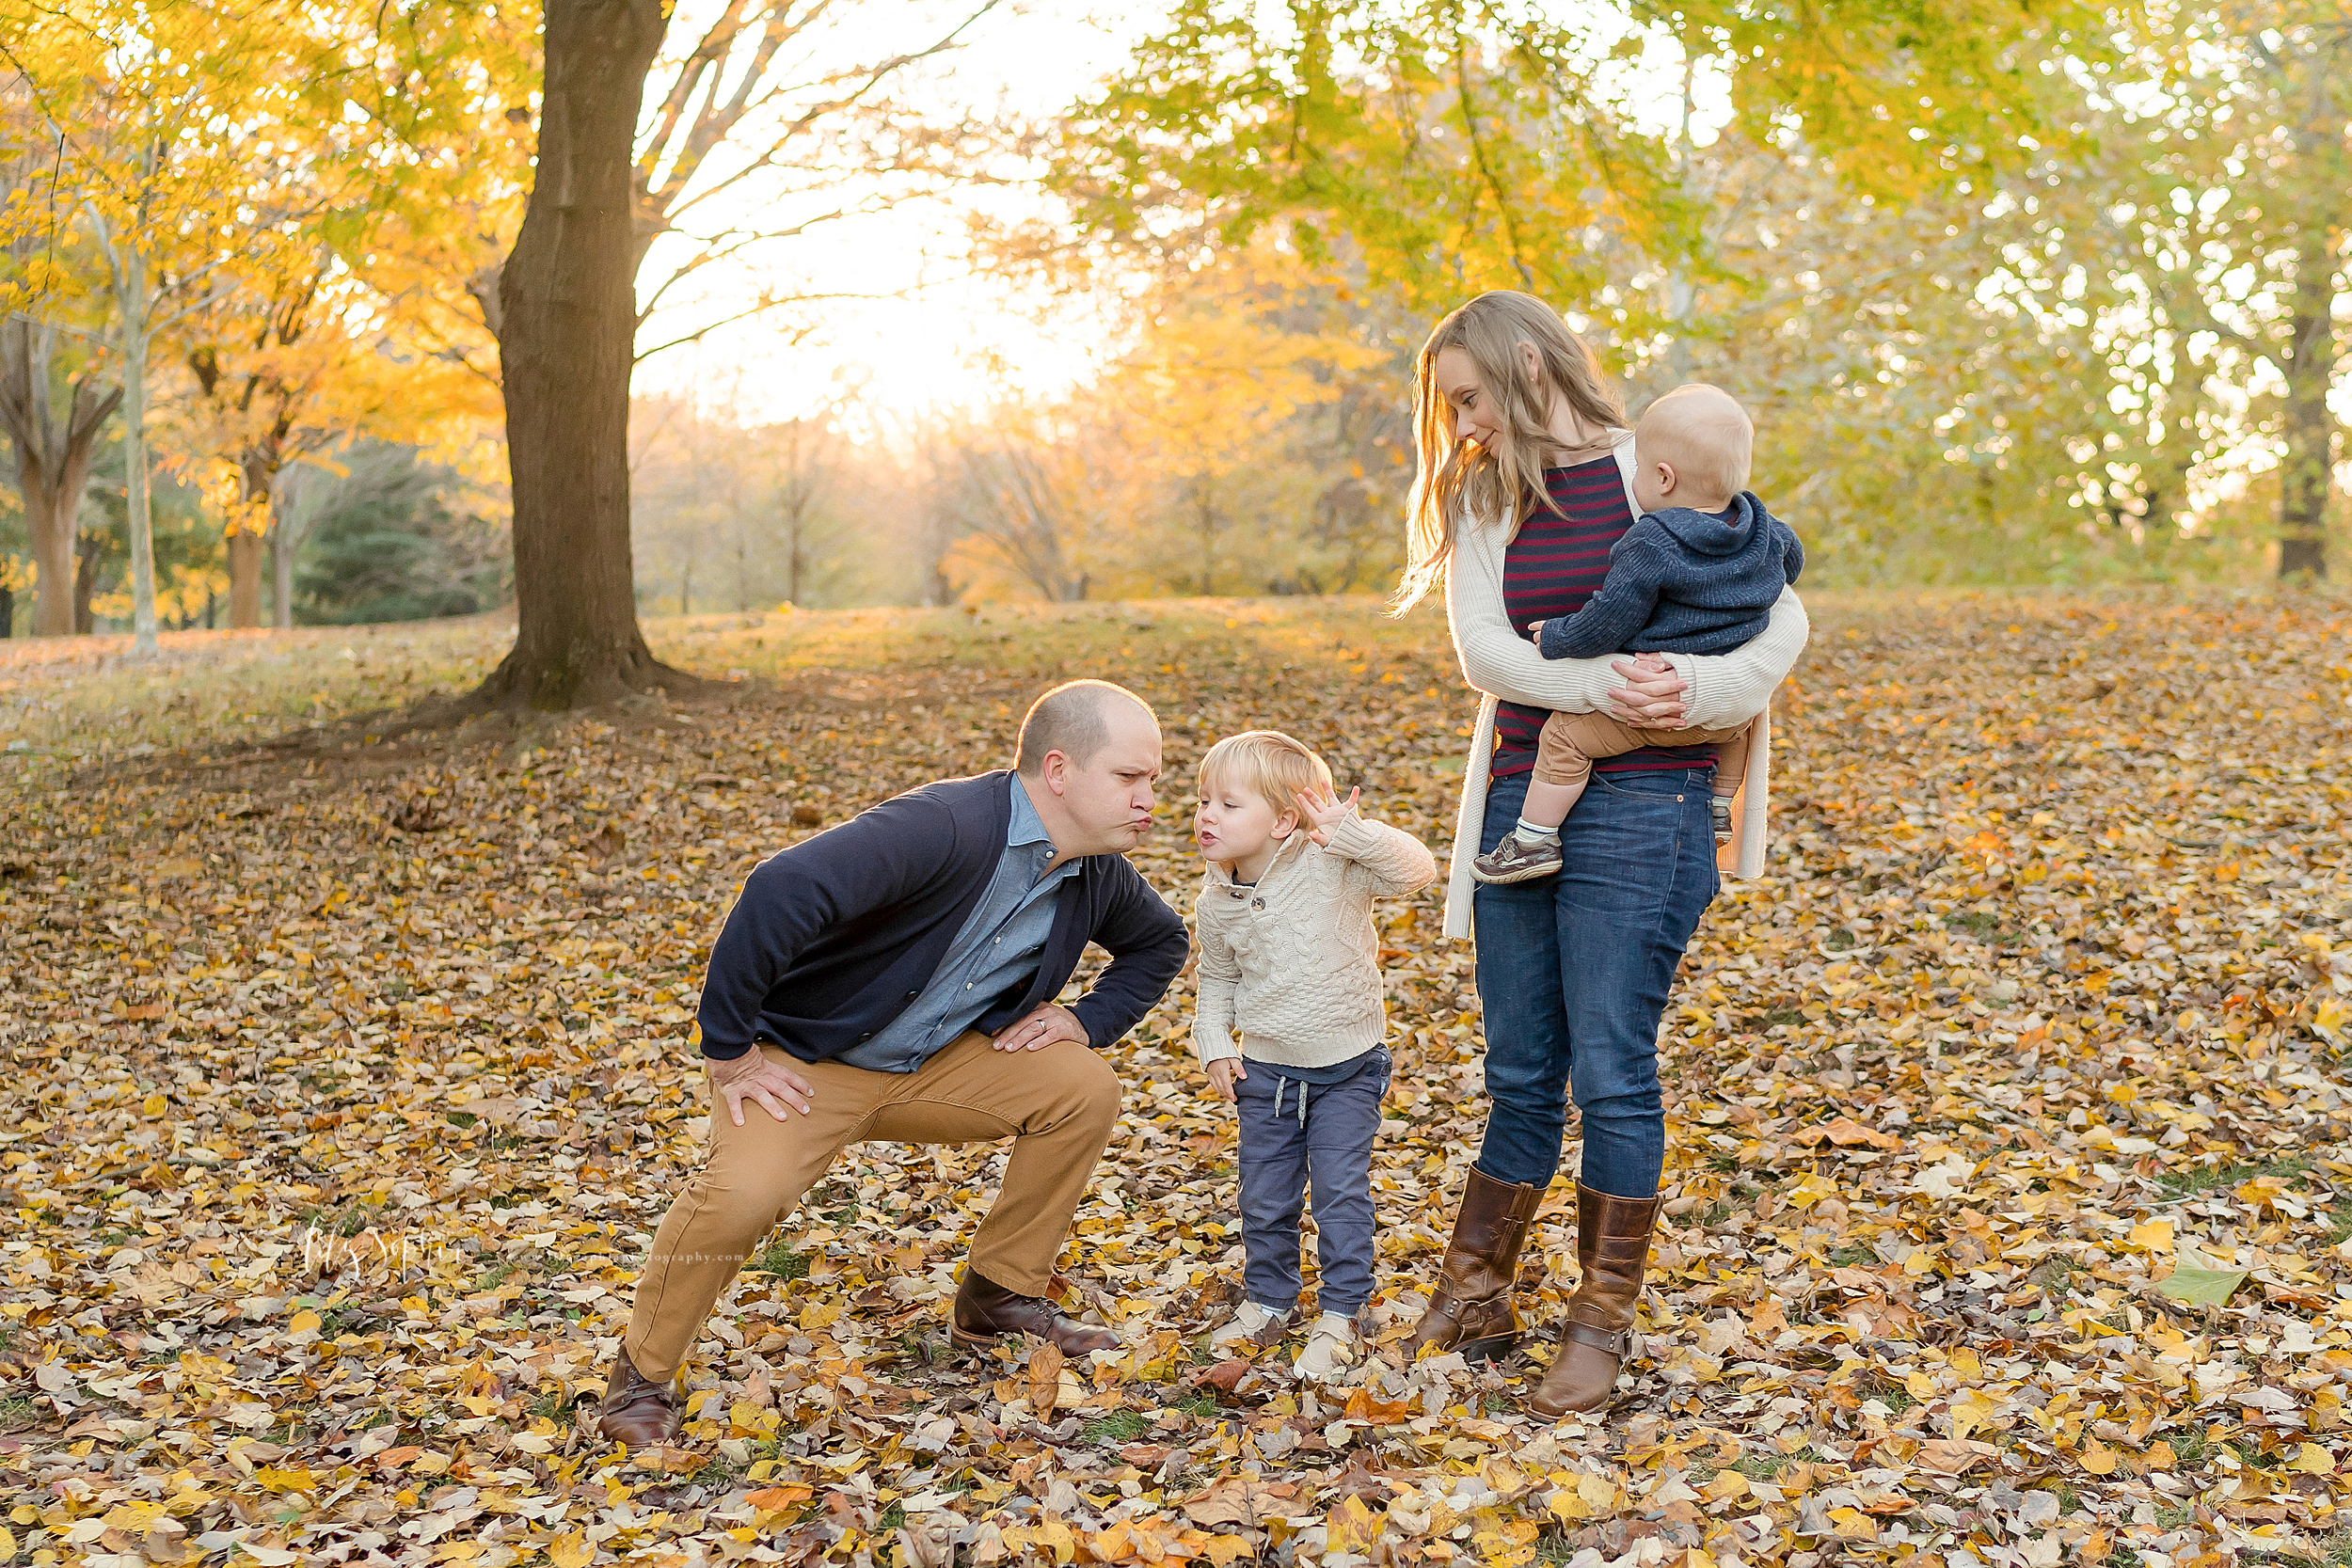 atlanta-midtown-brookhaven-decatur-lily-sophia-photography-photographer-portraits-grant-park-family-sunset-fall-outdoor-session-brothers-toddler-baby_0155.jpg